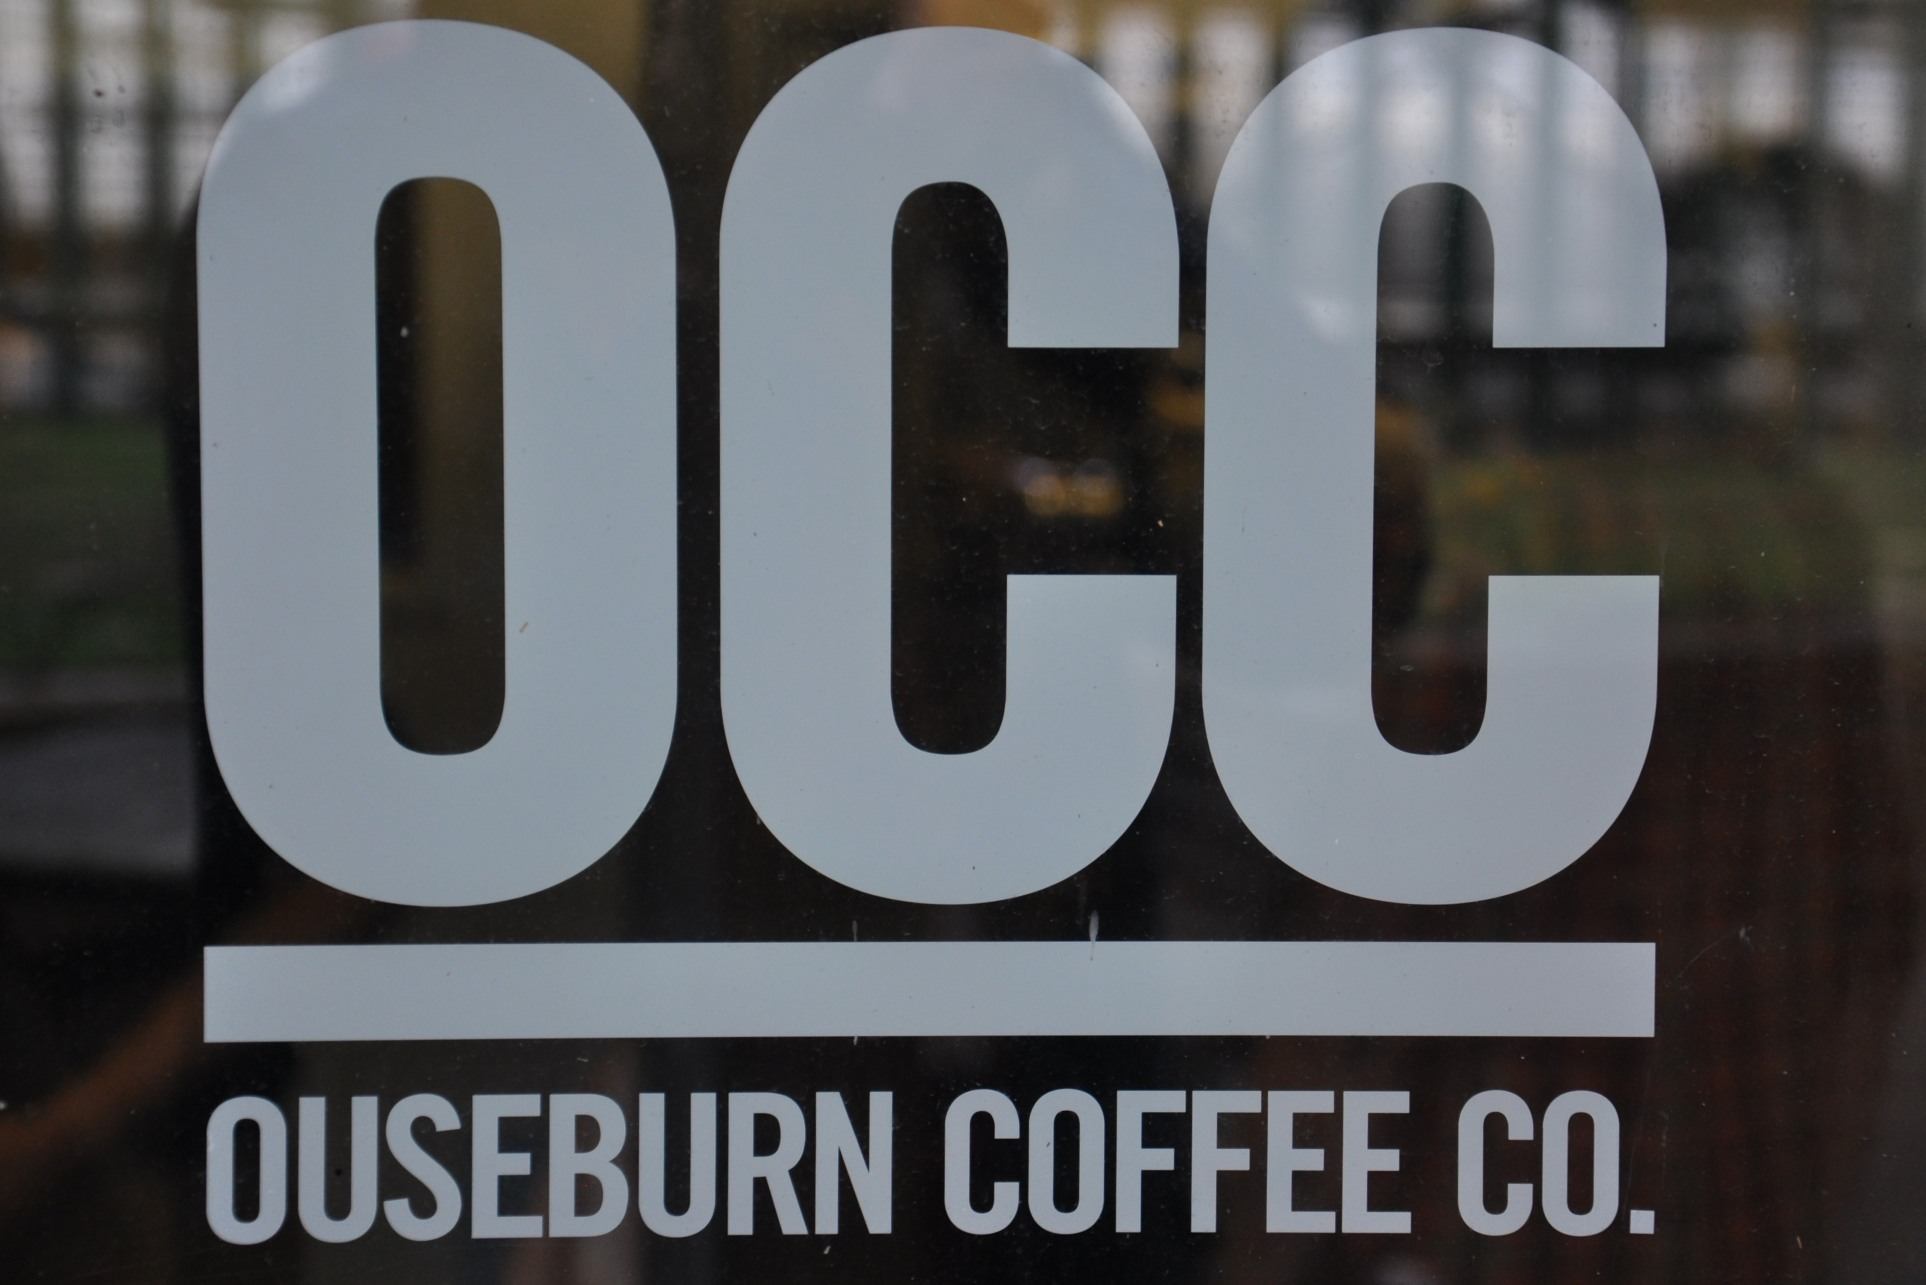 The Ouseburn Coffee Co. logo: the letters OCC above, with 'Ouseburn Coffee Co.' below, separated by a thick horizontal line.